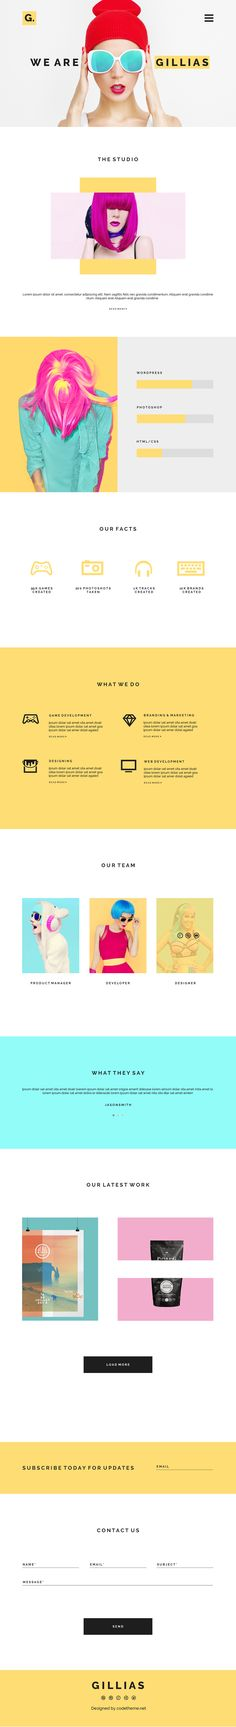 Gillias an Agency Web Design on Behance